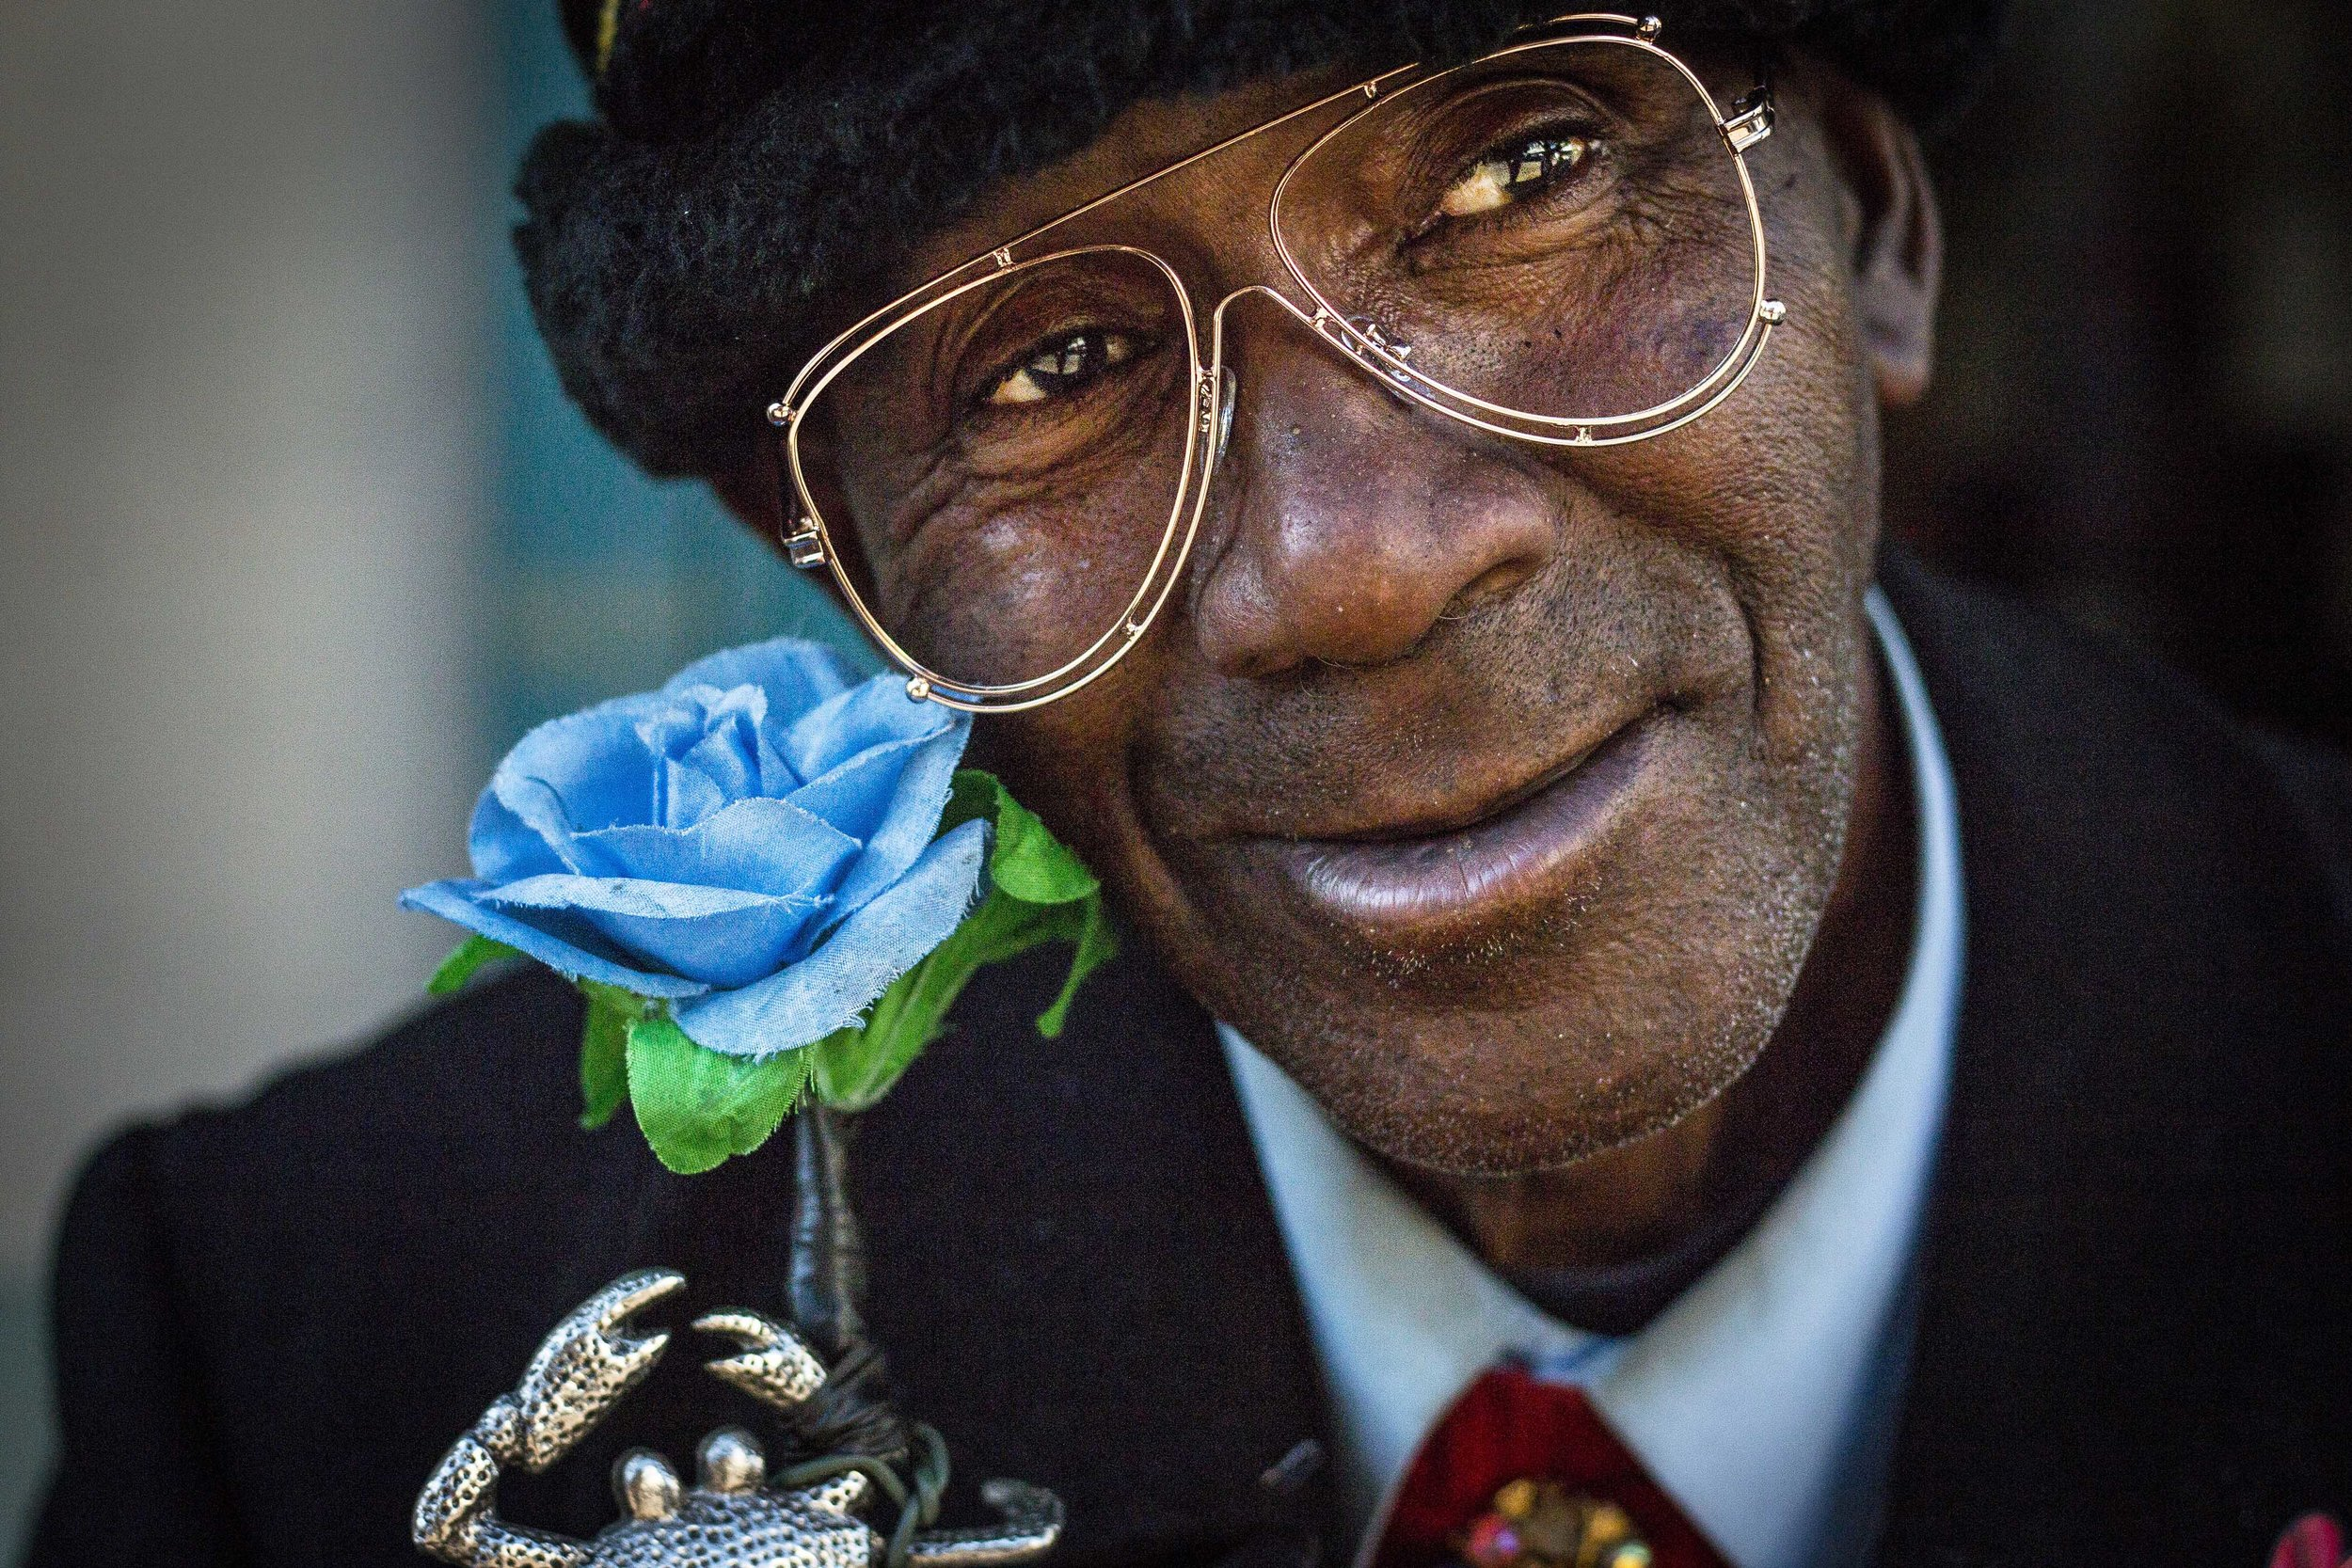 Sitting on a New Orleans stoop and resting on a cane, wrapped with a blue flower and topped with a sliver crab, Chester talks about growing up on Bourbon Street, Nov. 26, in New Orleans, Louisiana.